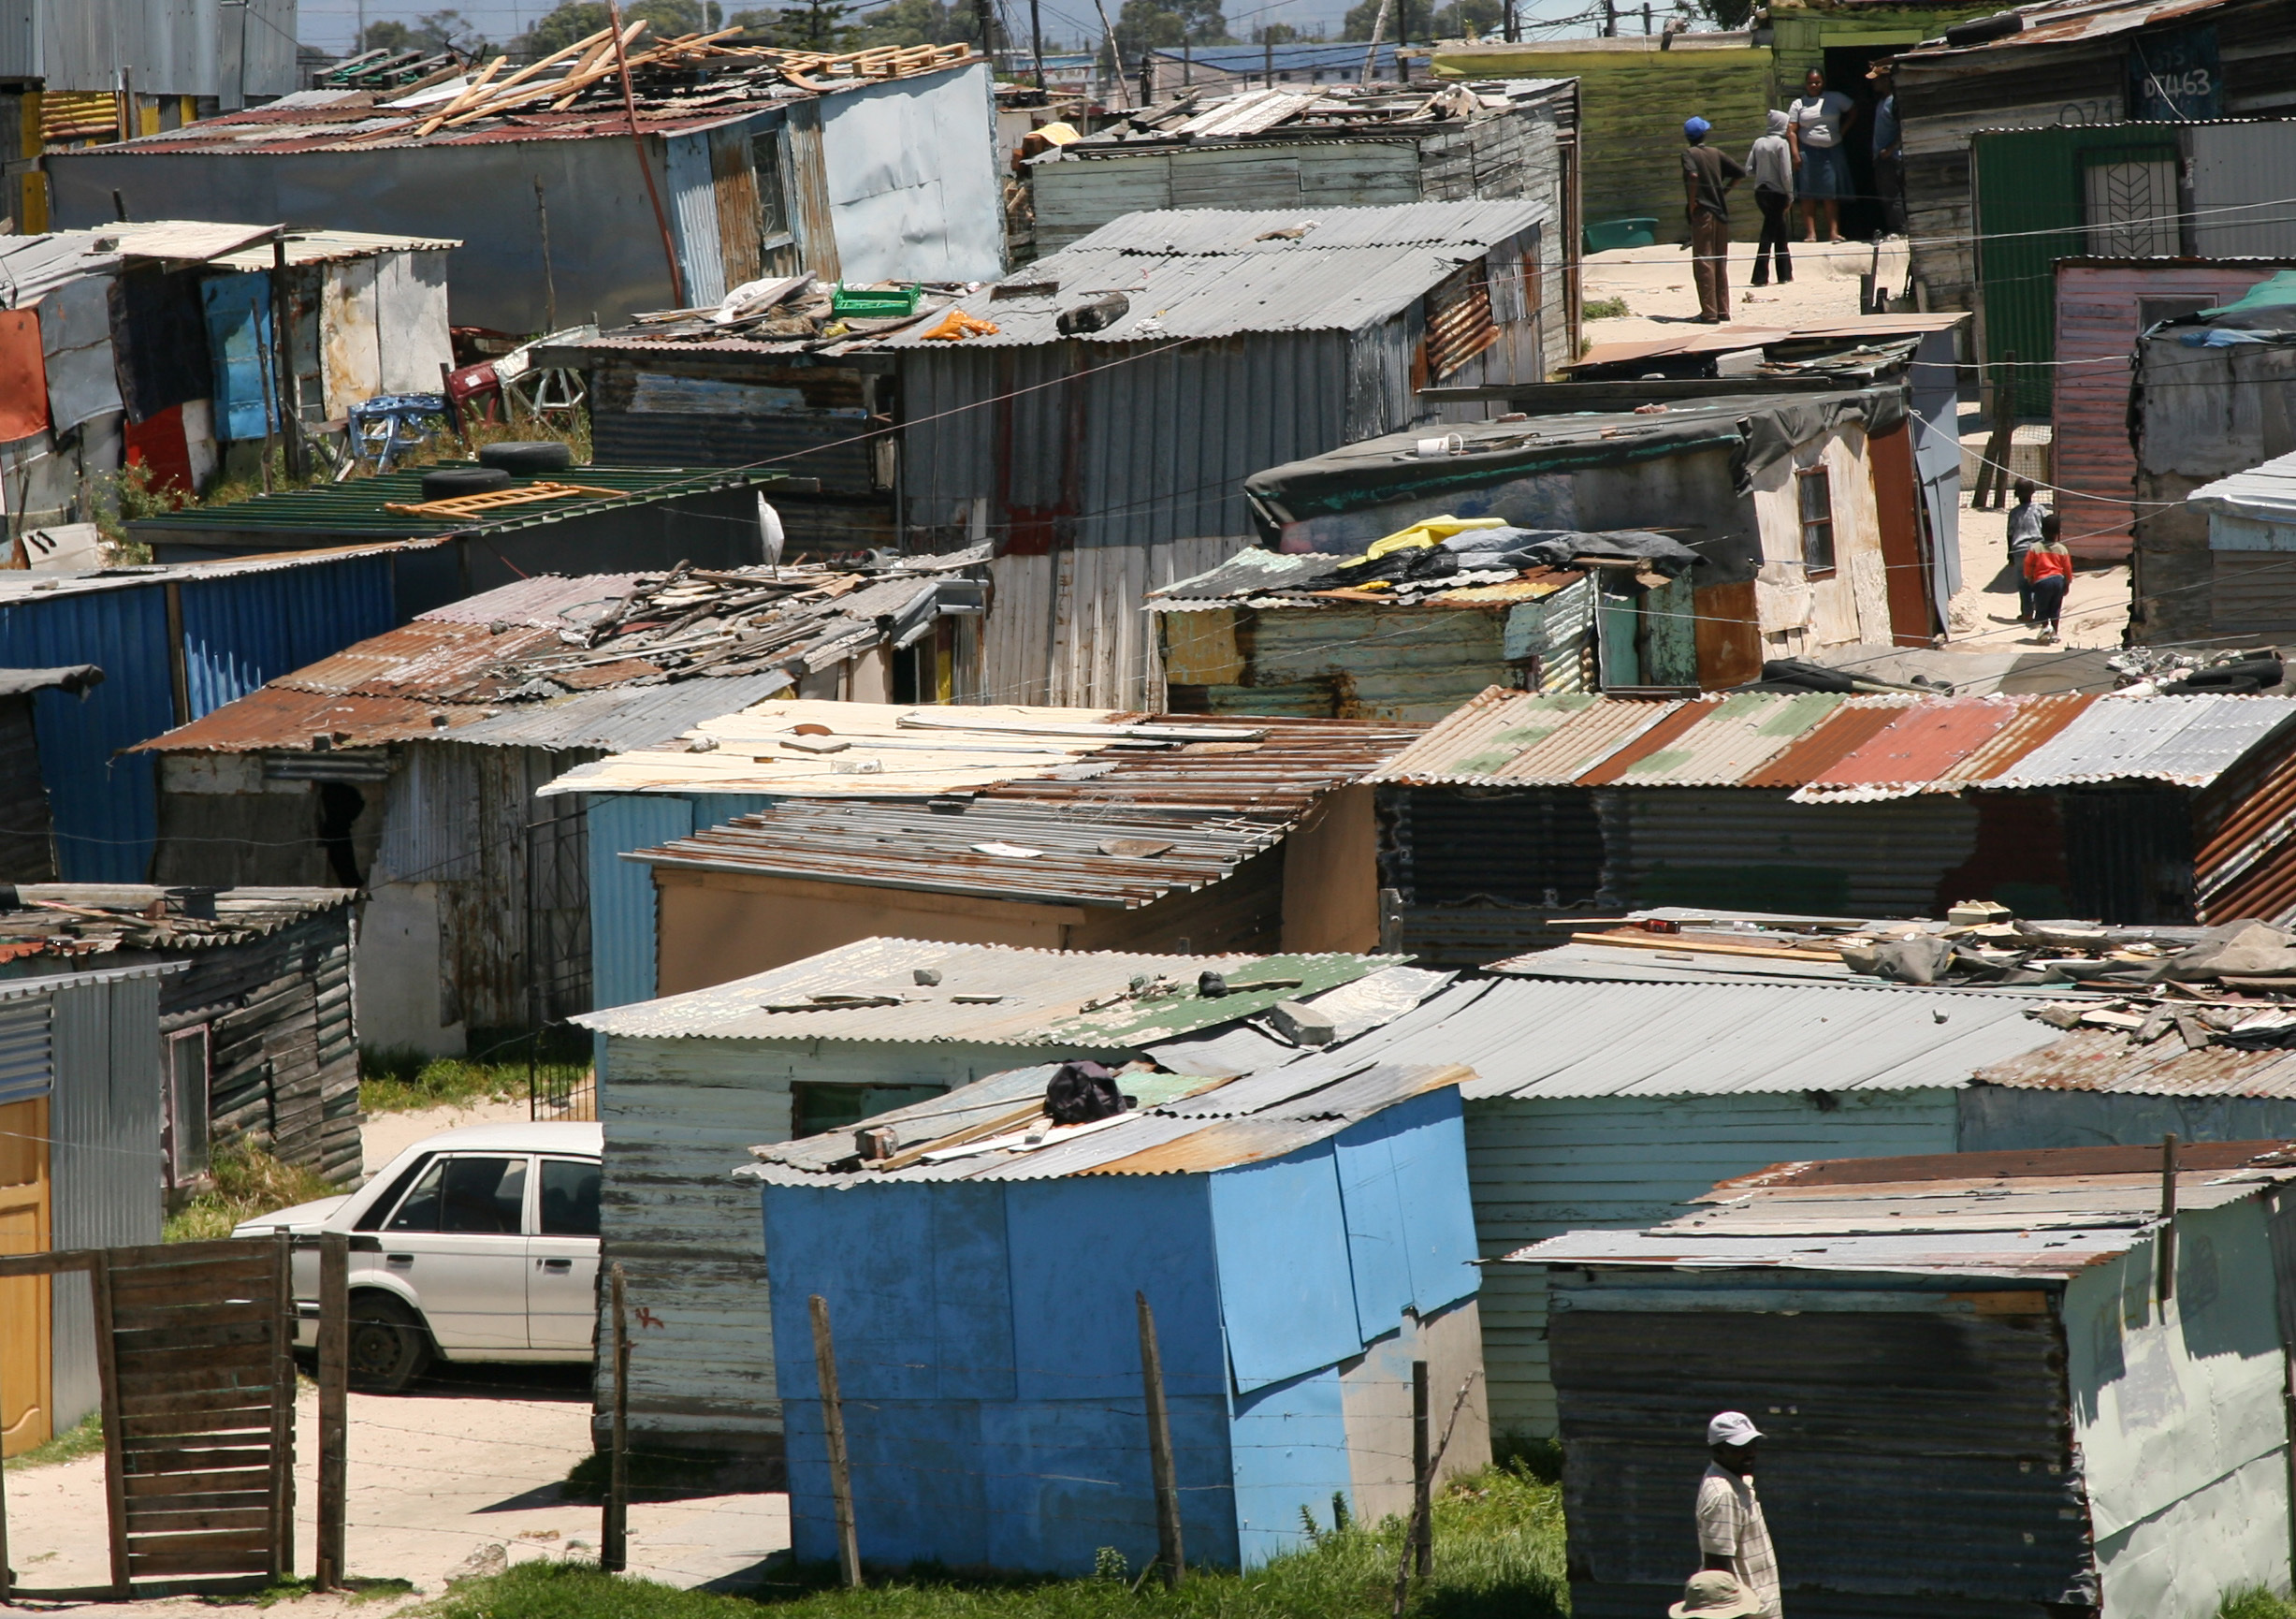 Khayelitsha township is not known for being the safest place. Credit: PA